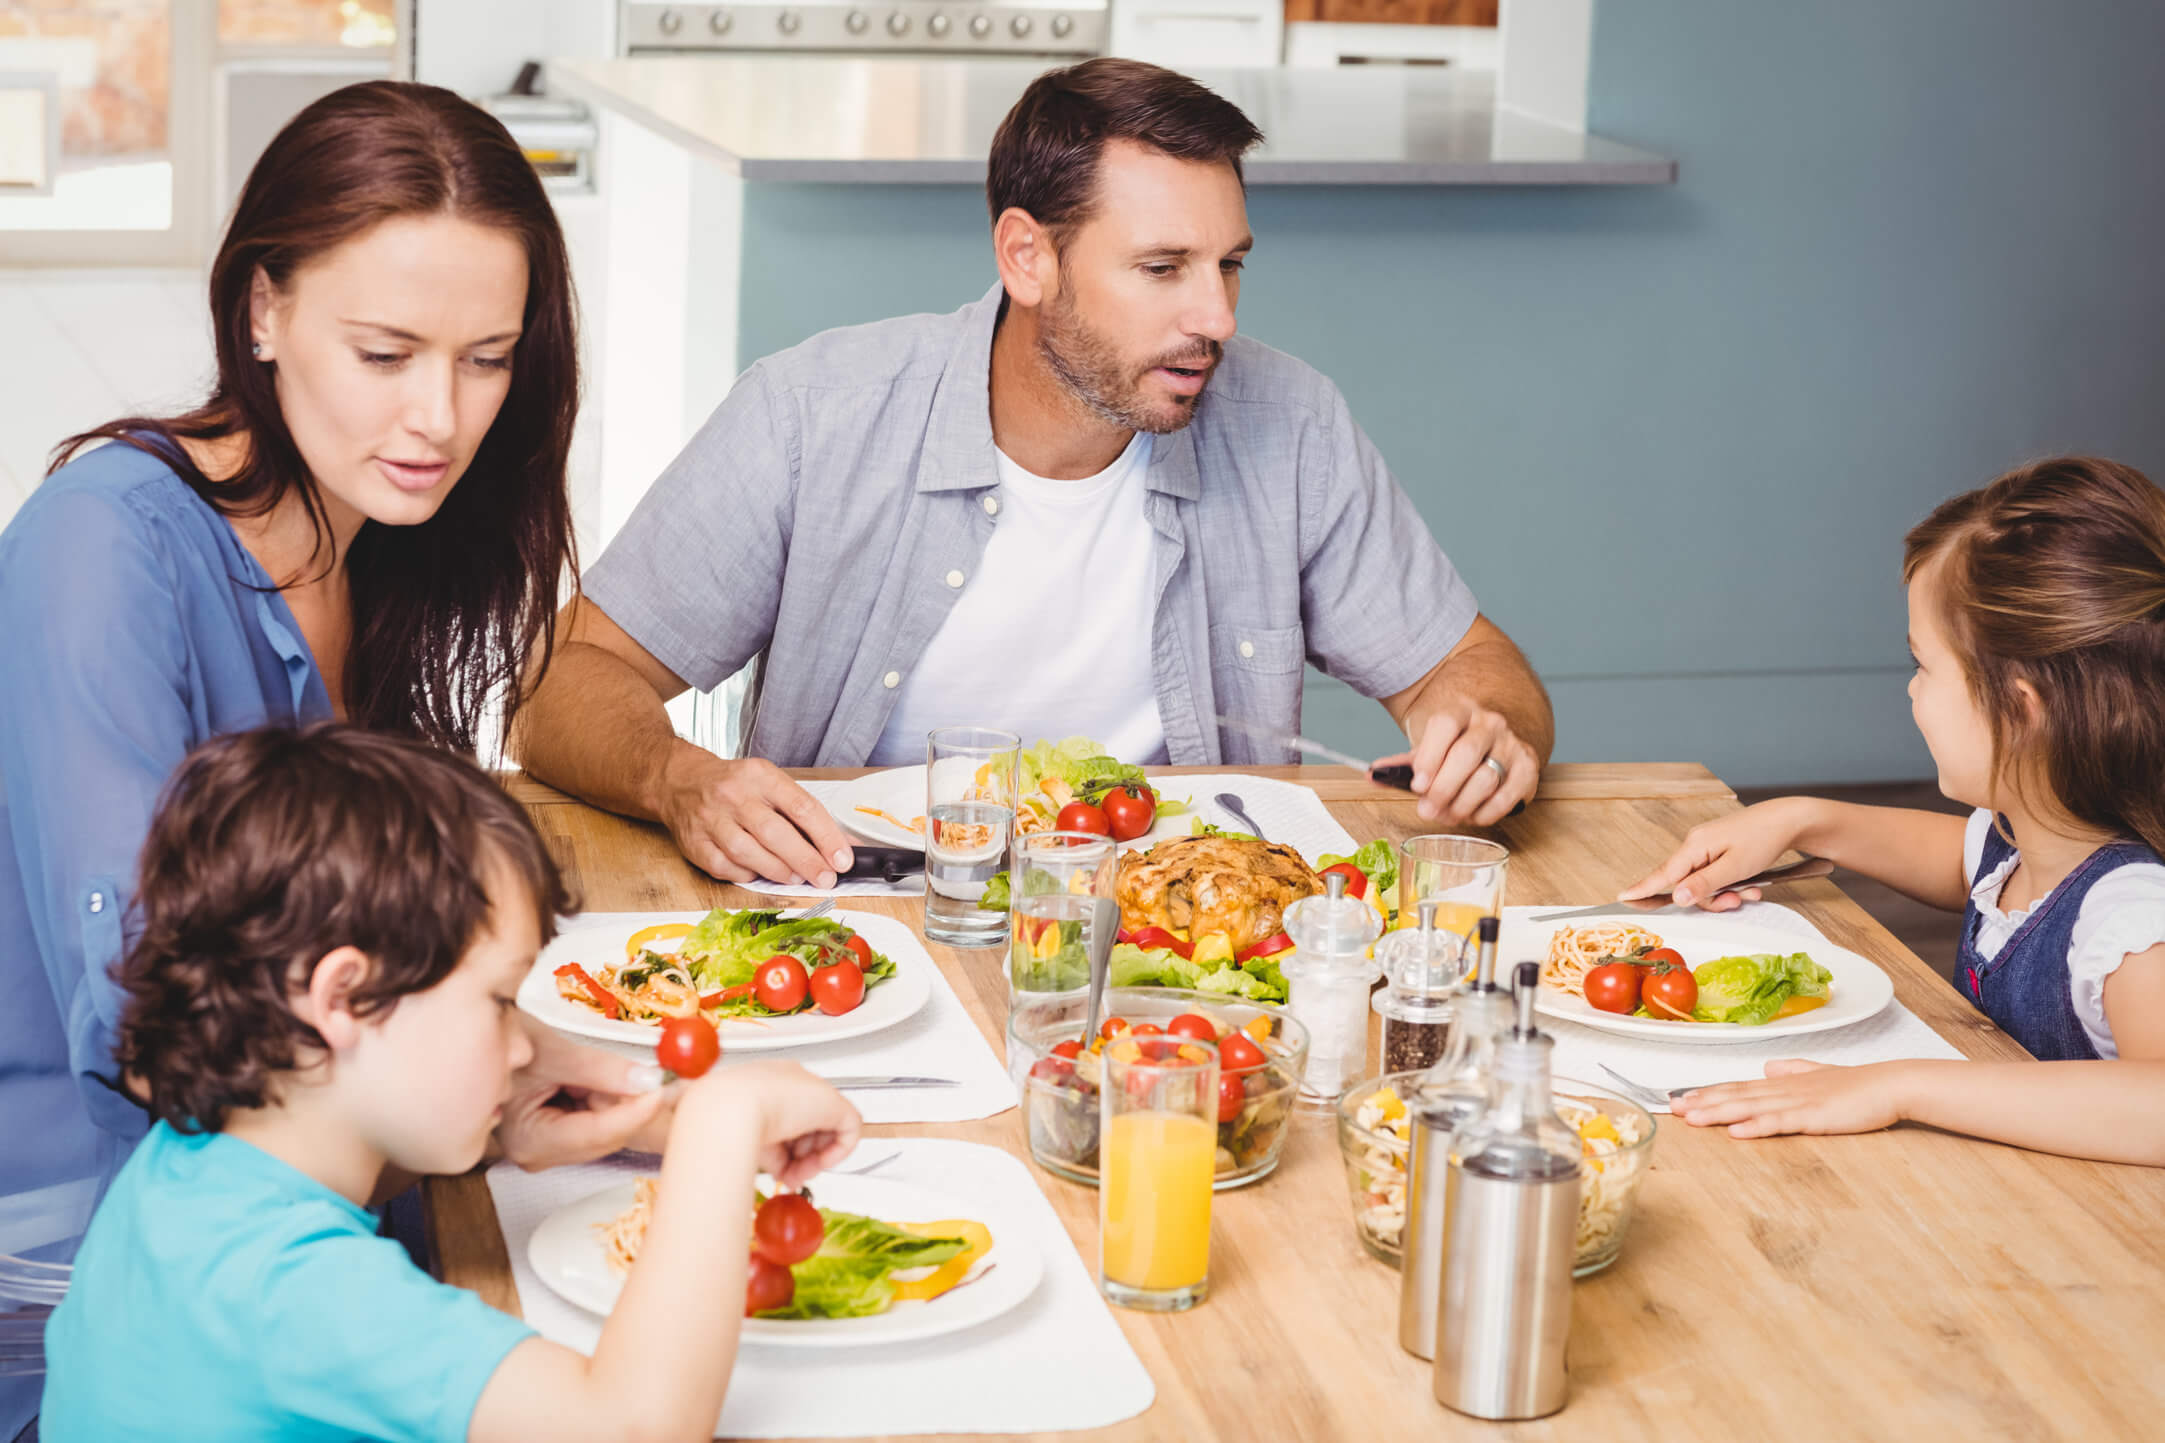 Family having meal together while sitting at dining table in home